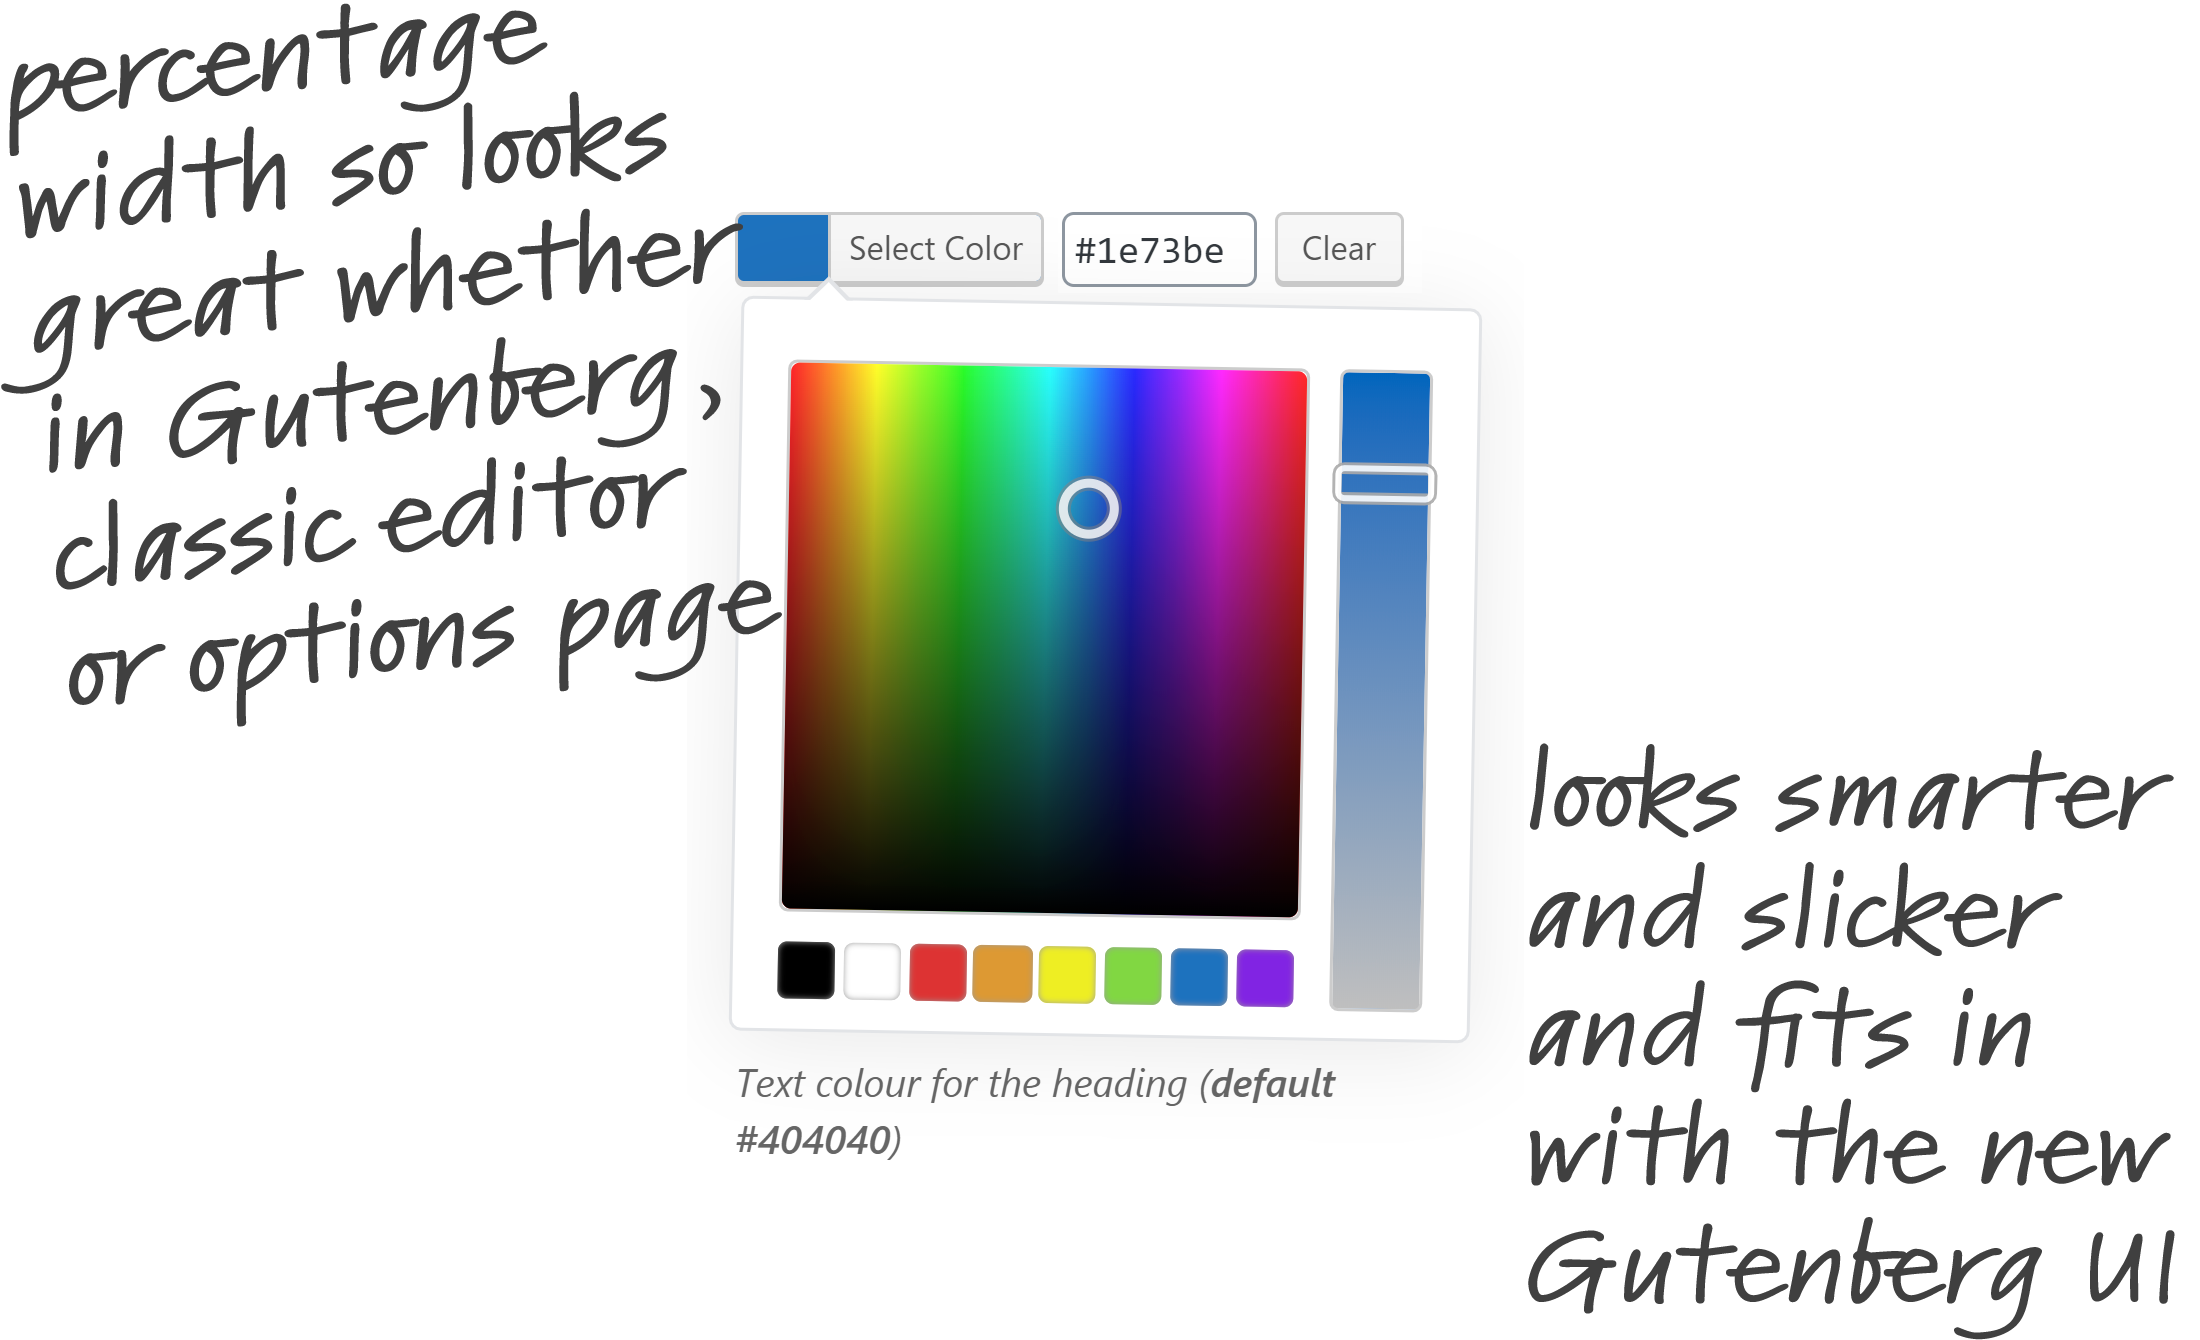 The Color Picker field - looking smarter, slicker and fits perfectly with the new Gutenberg UI